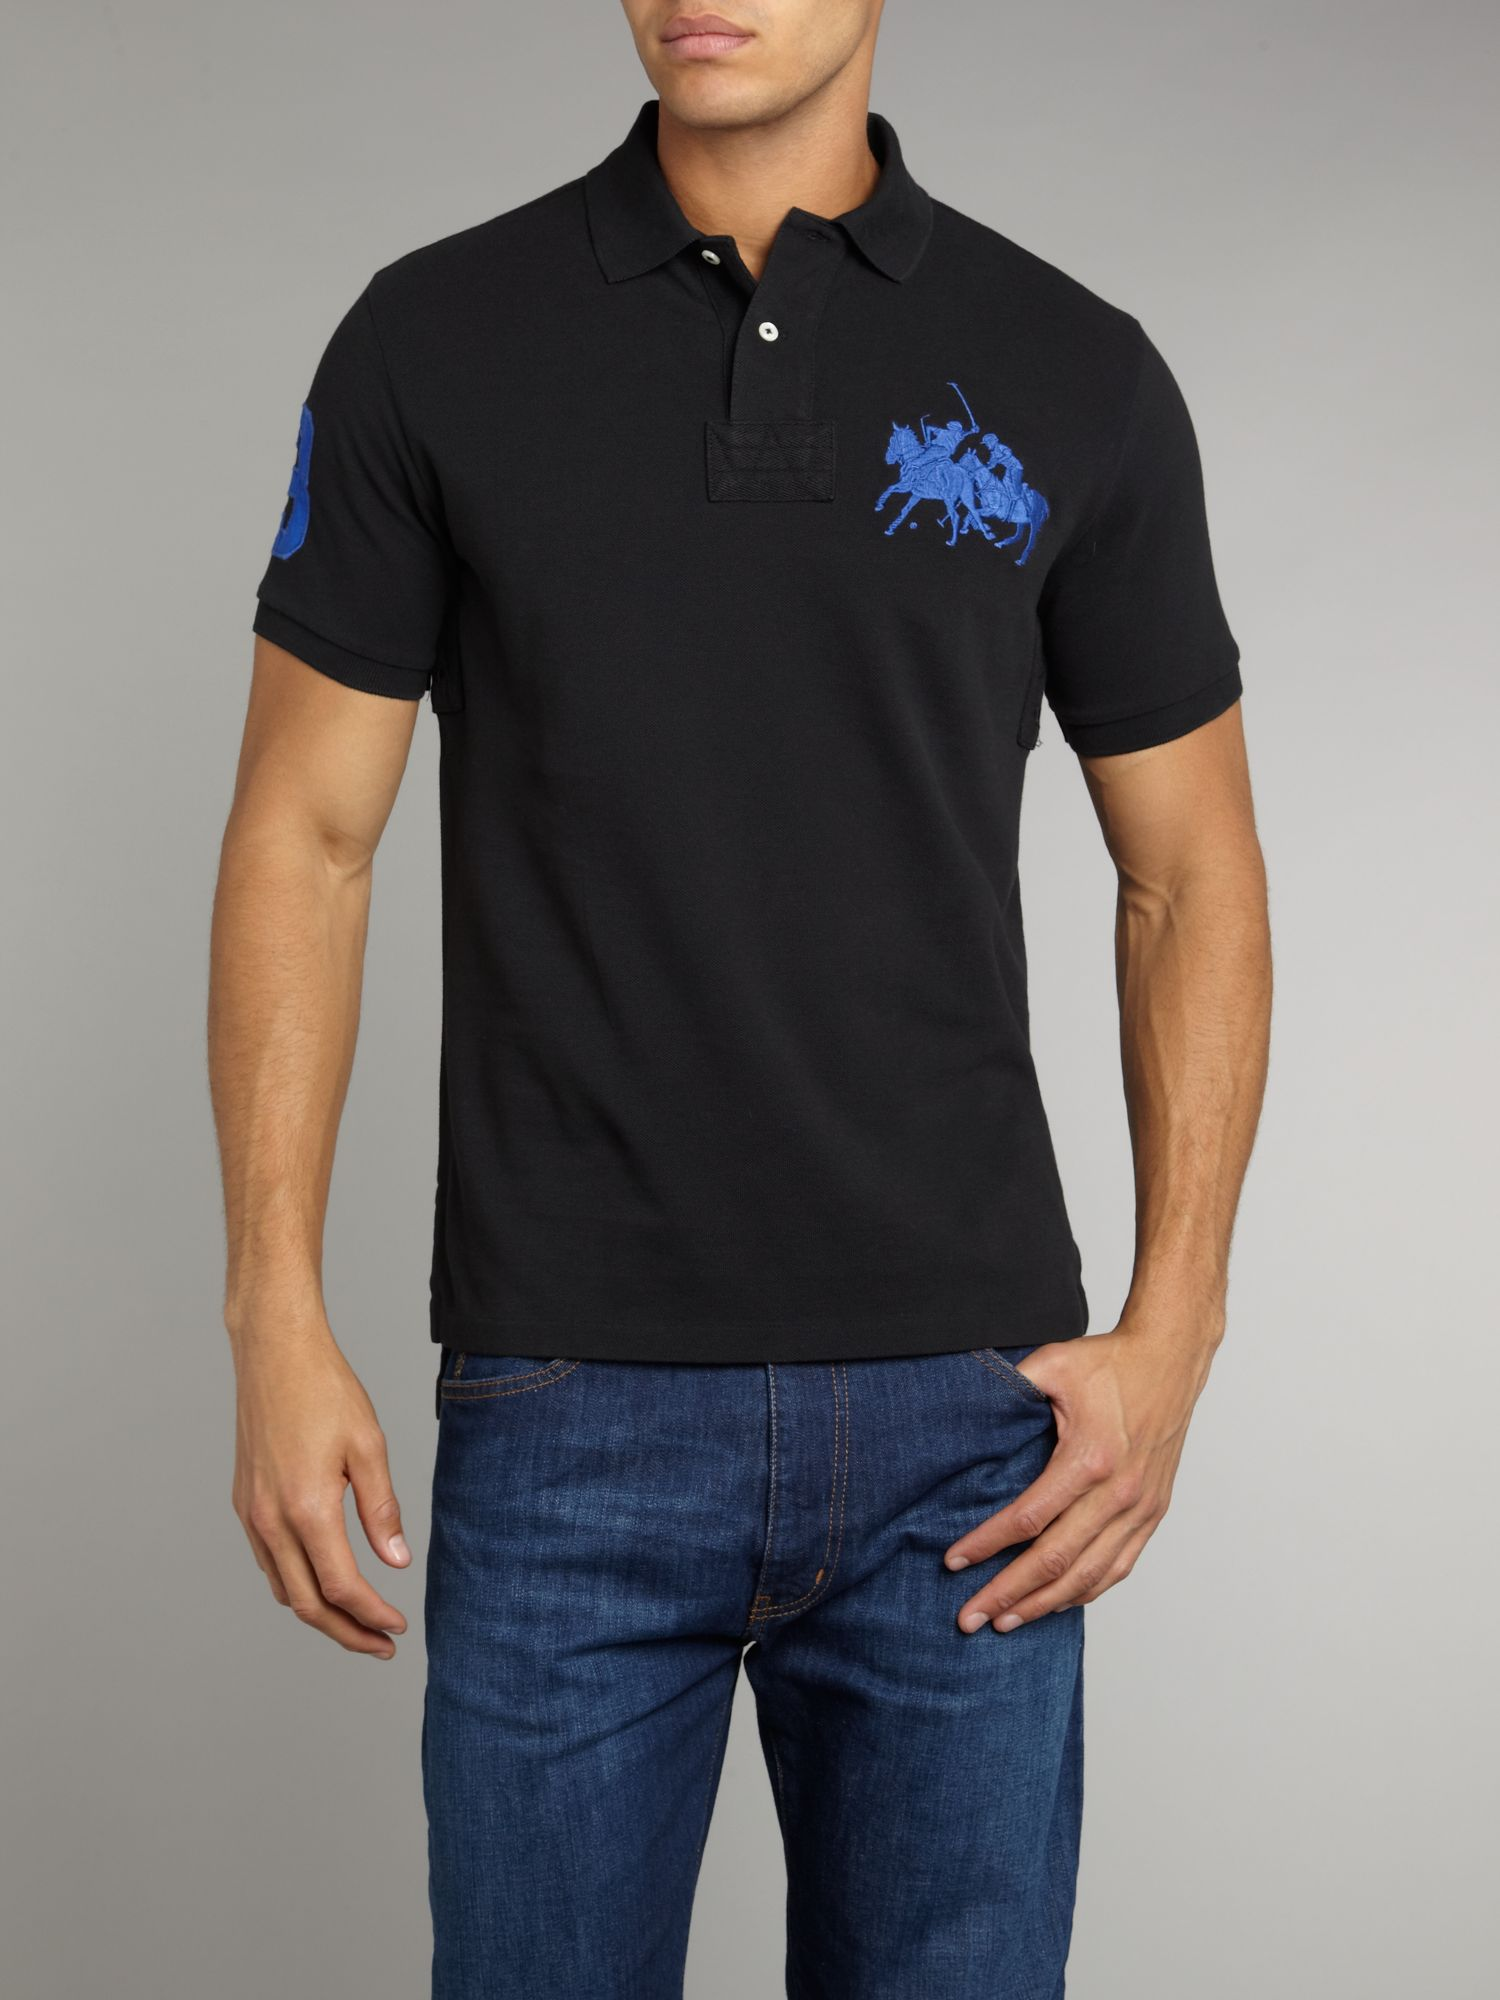 Polo ralph lauren slim fitted dual match polo shirt in for Black fitted polo shirt